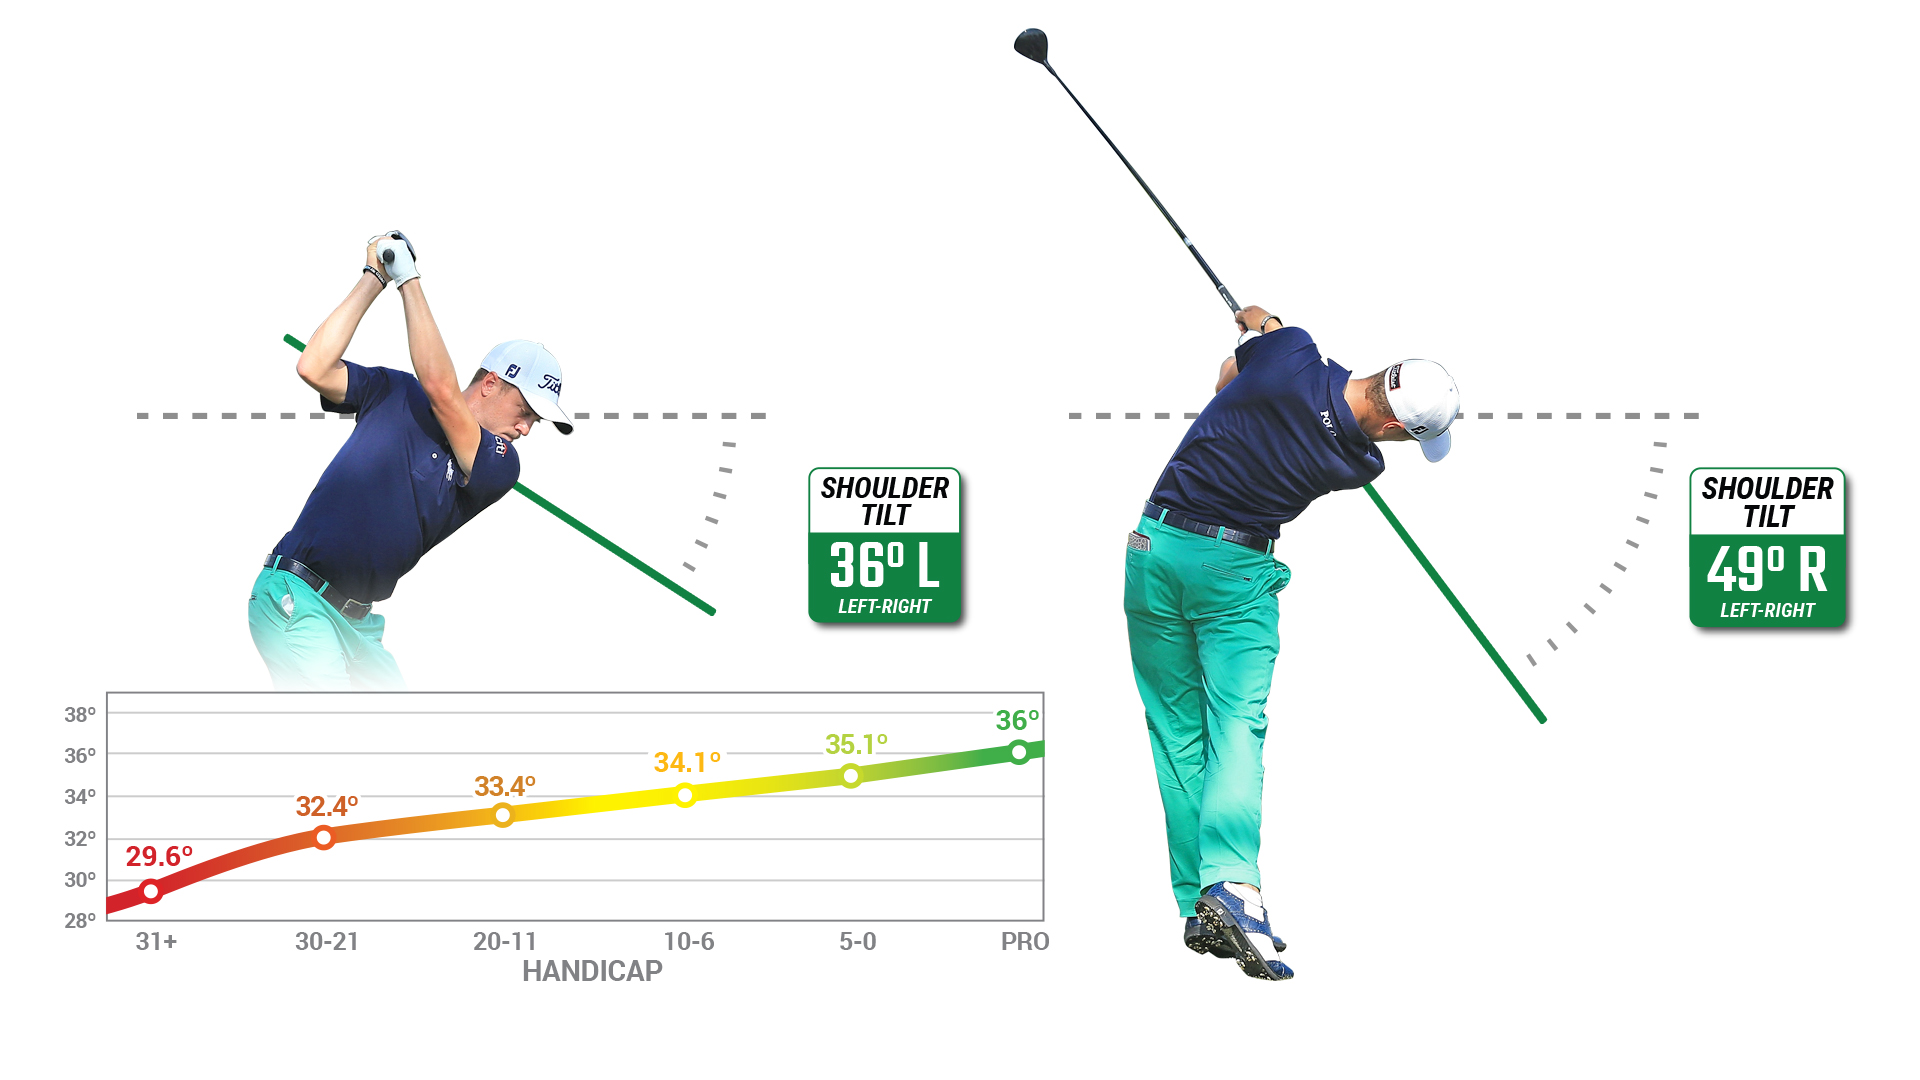 Justin Thomas Shoulder Tilt- Justin Thomas graphic